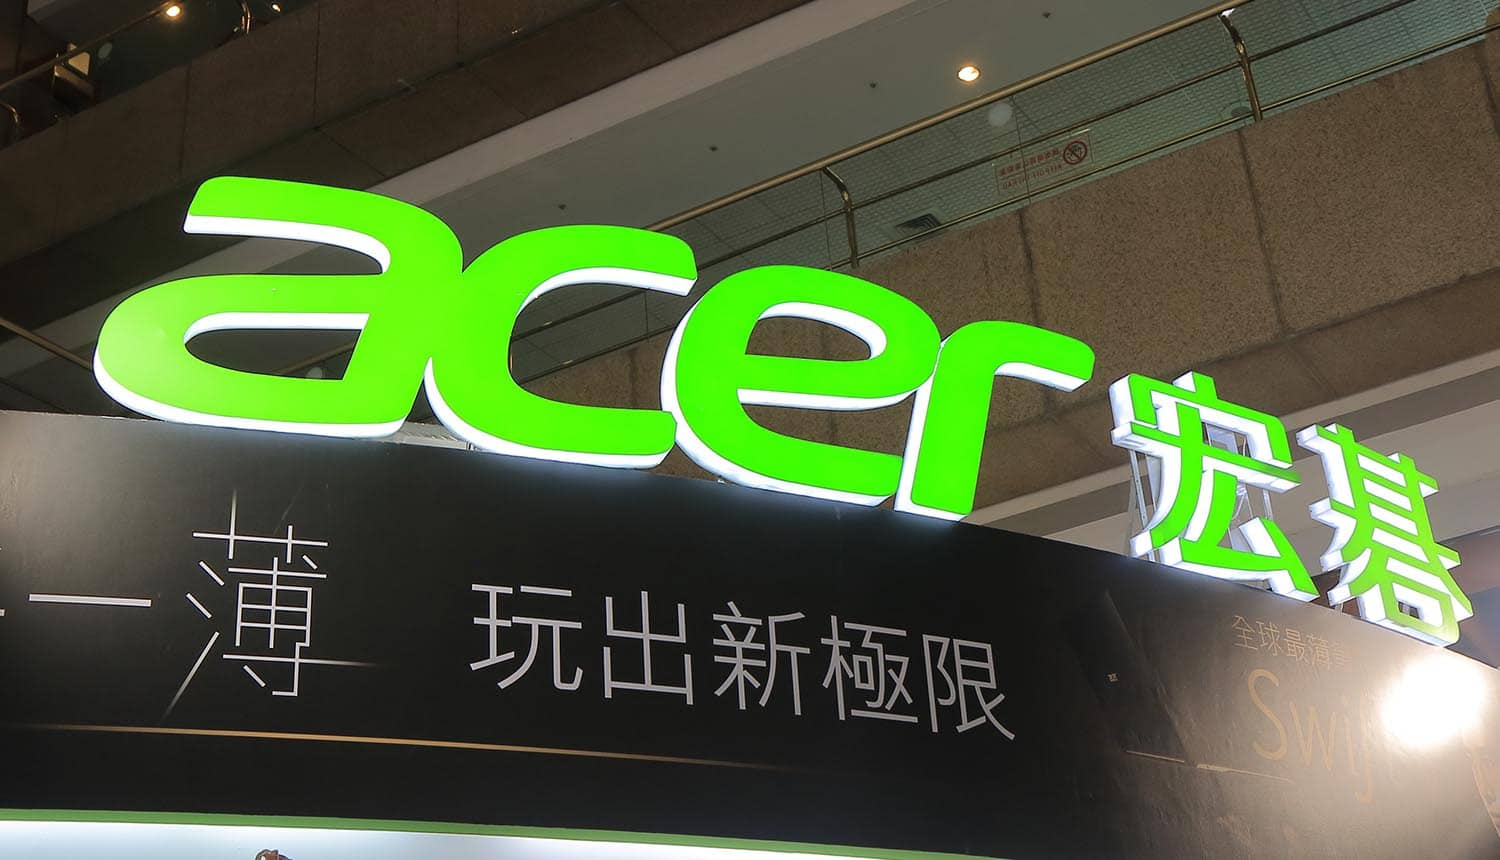 Acer logo showing REvil ransomware attack